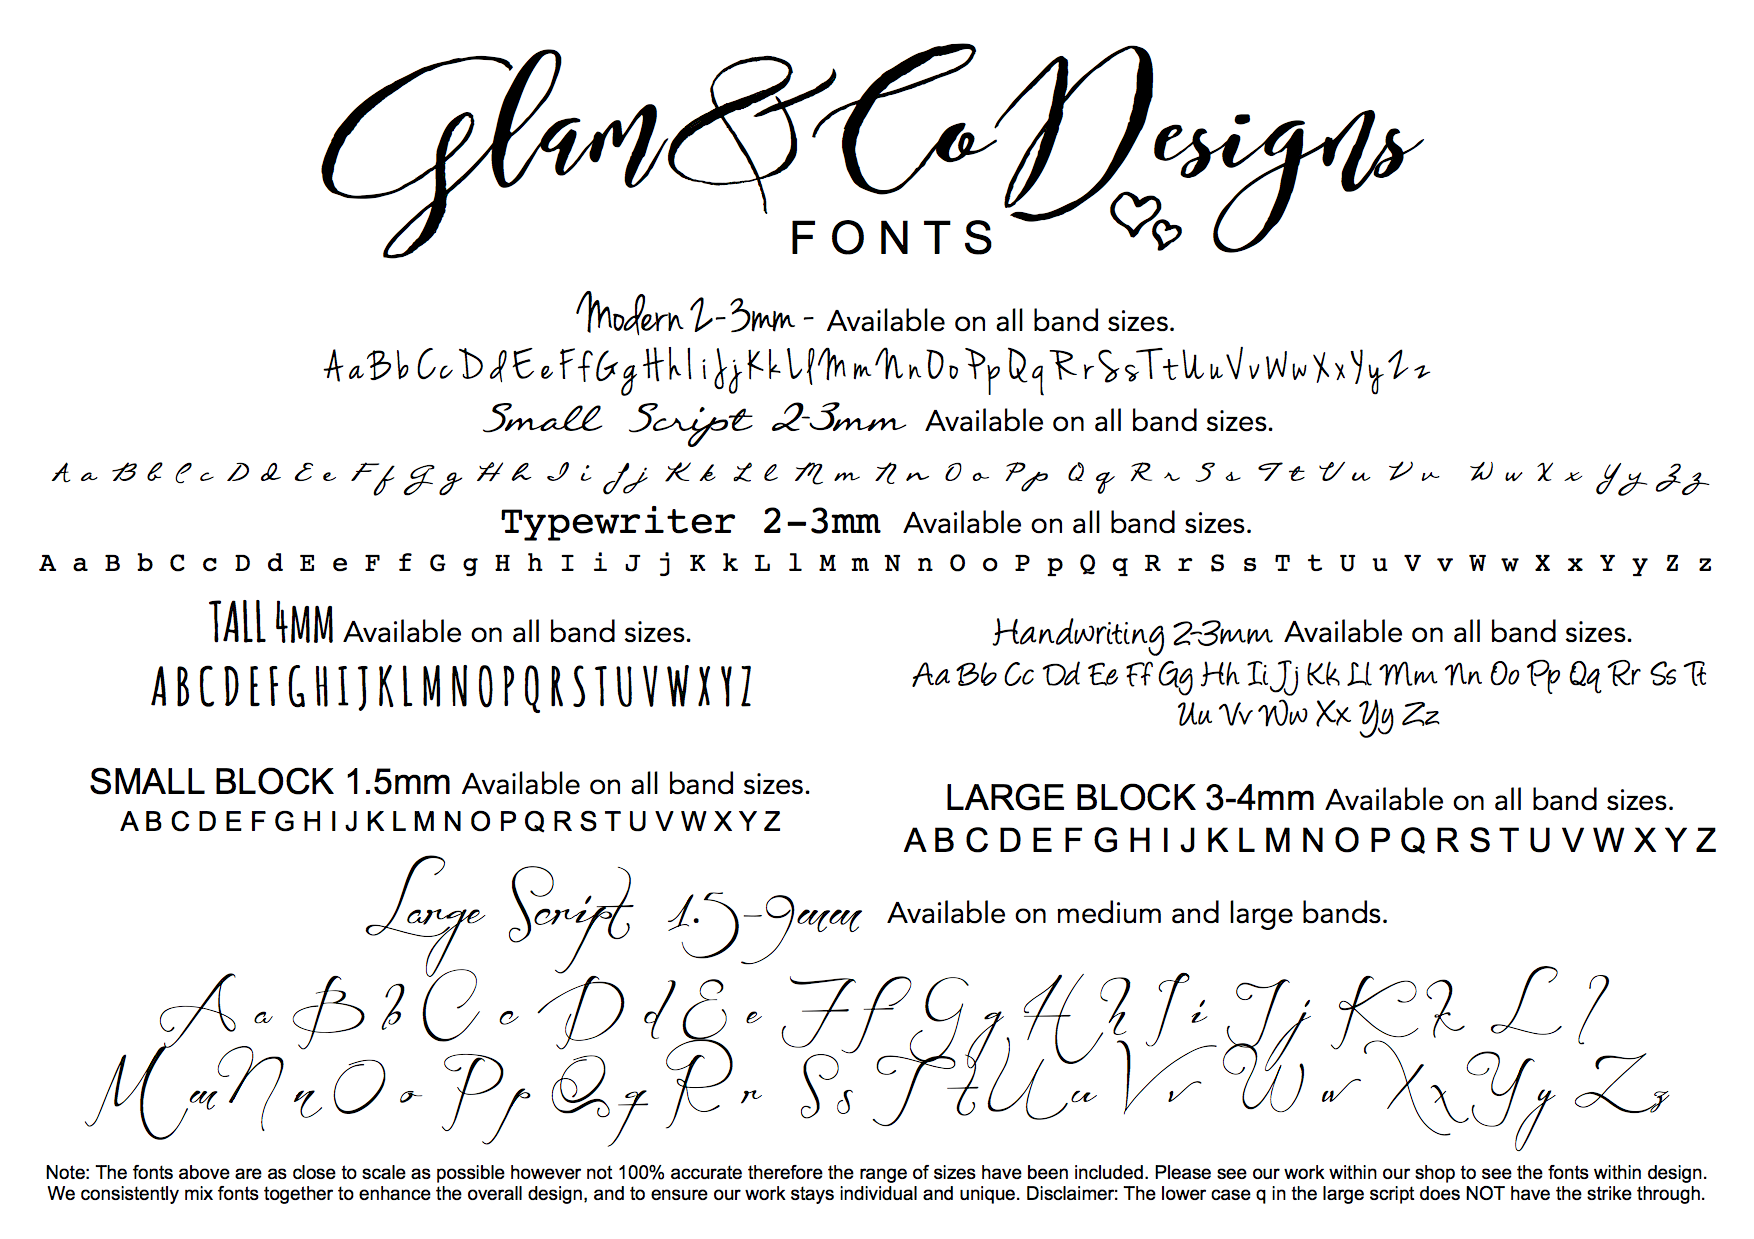 Glam and Co Font List